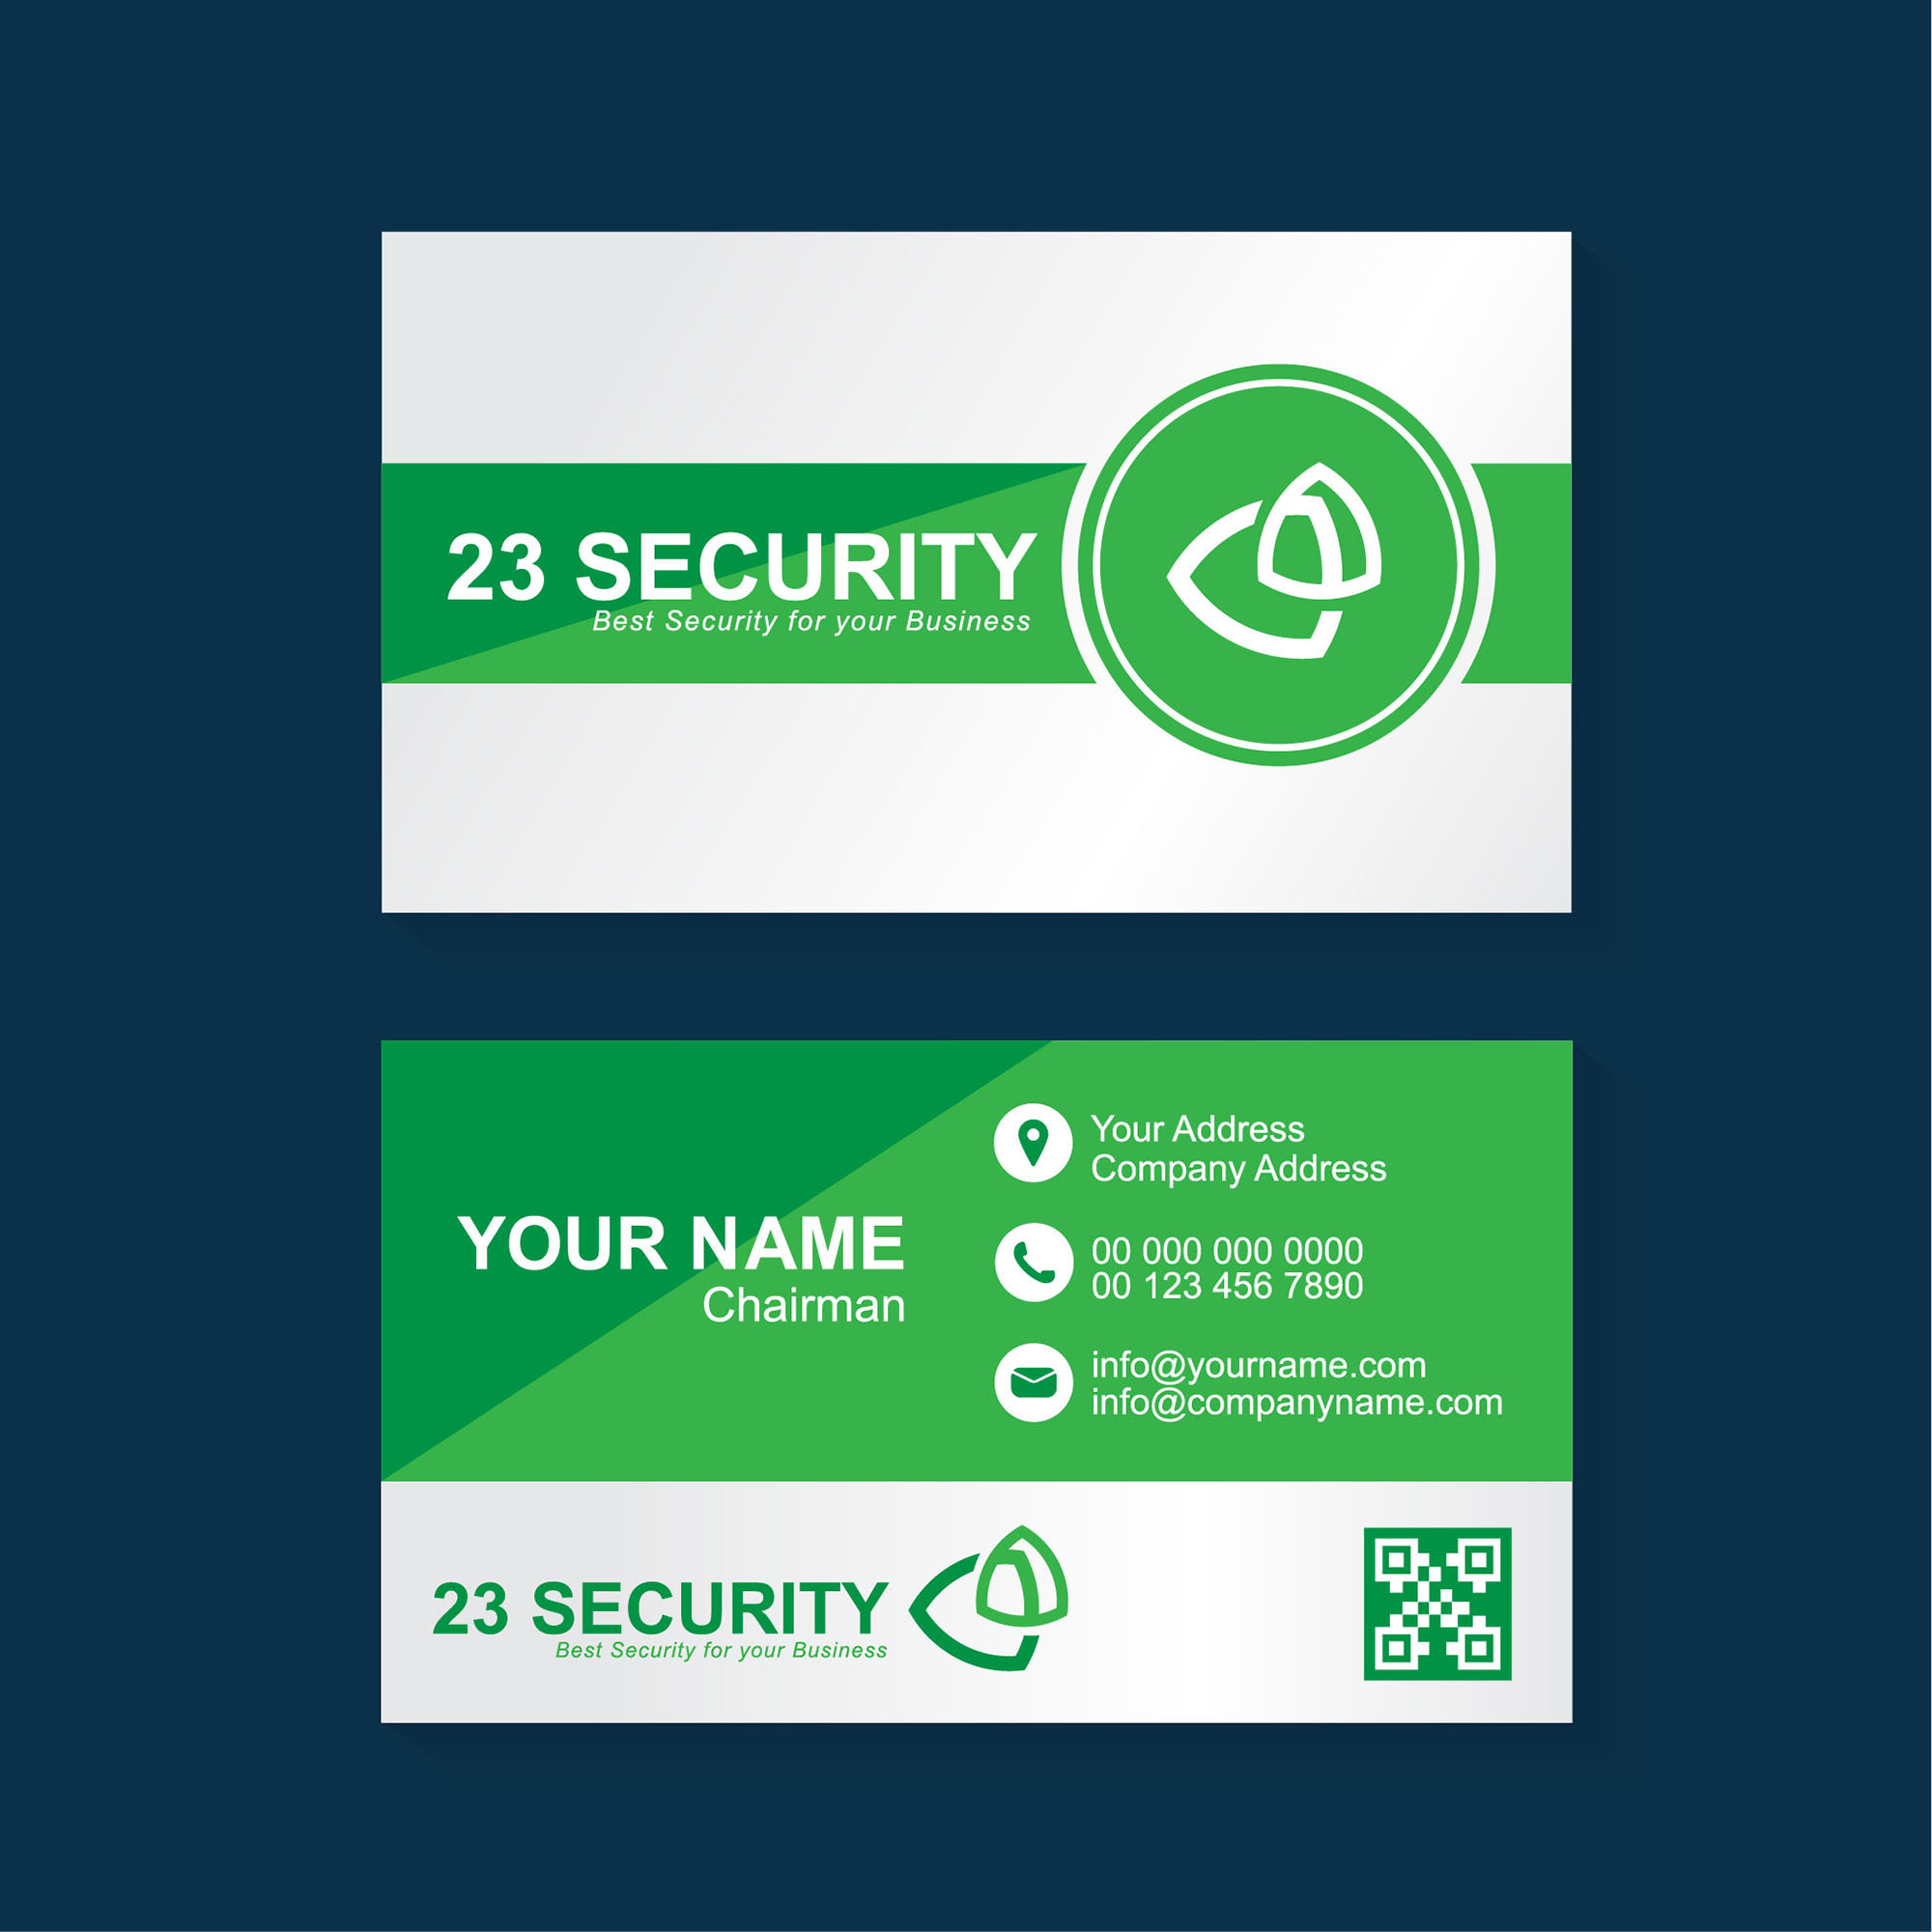 Security business card template free download wisxi business card business cards business card design business card template design templates reheart Choice Image